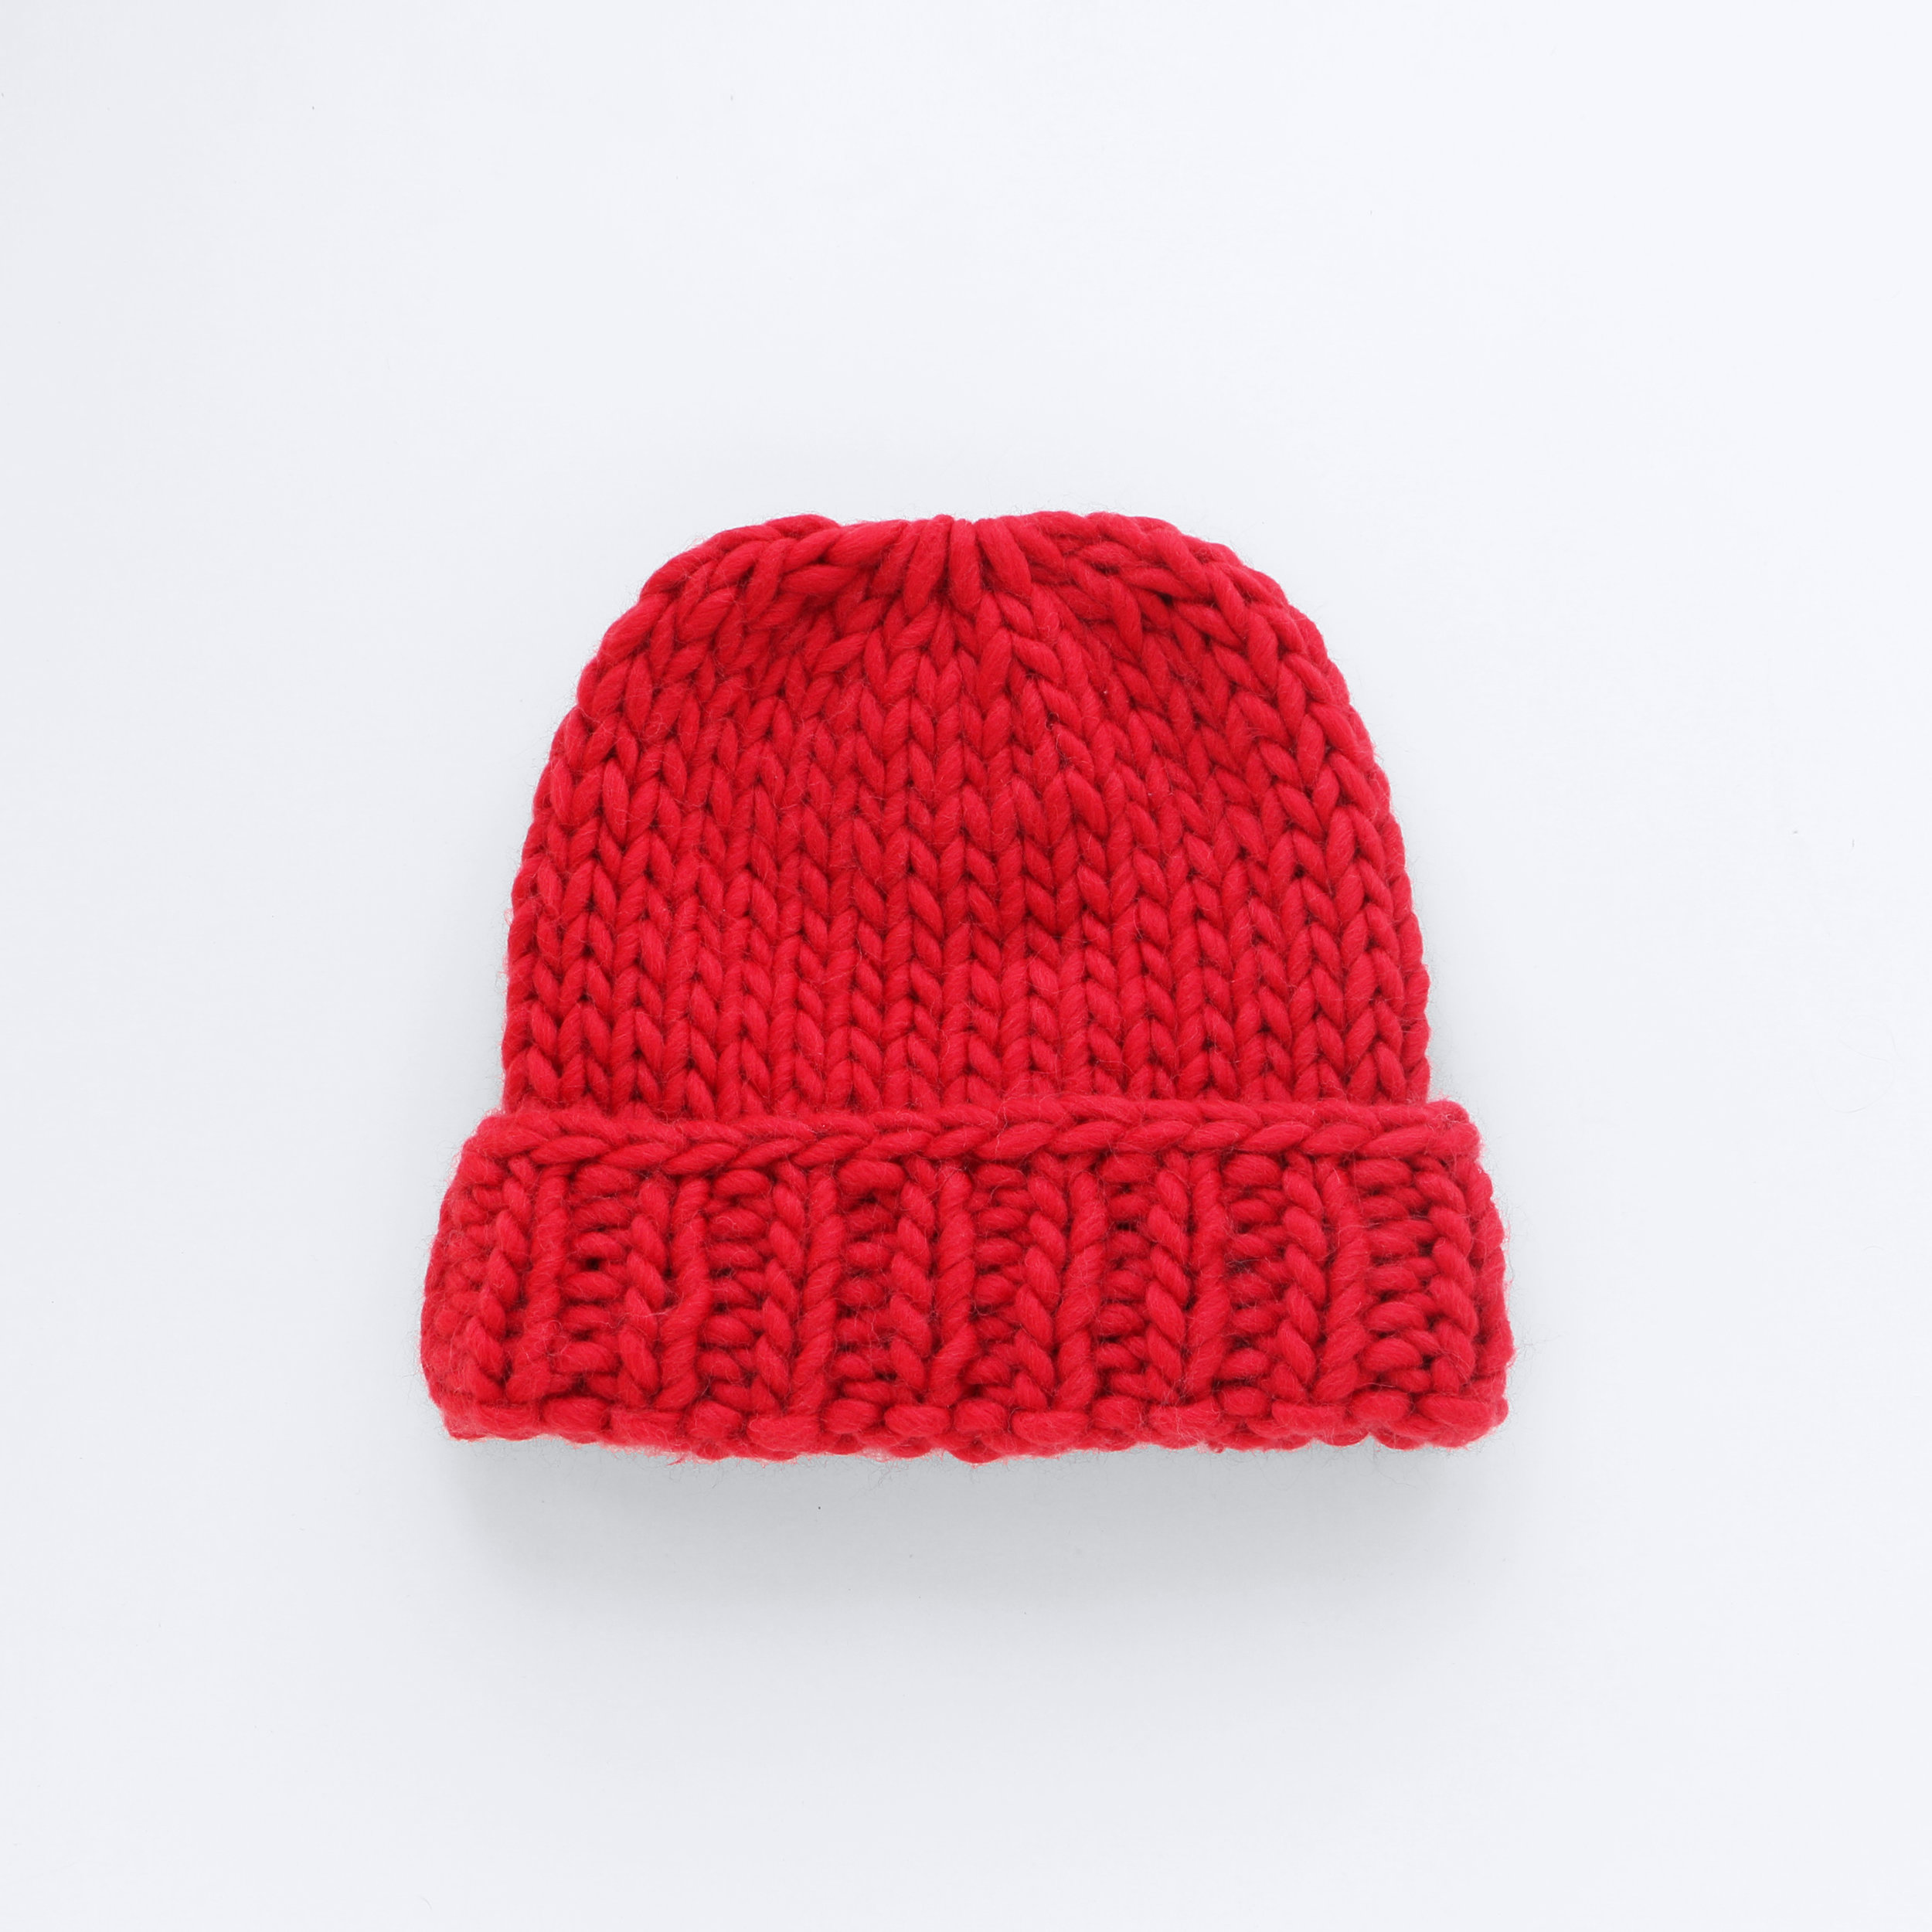 MAKE IT BIG BEANIE - Red Heart